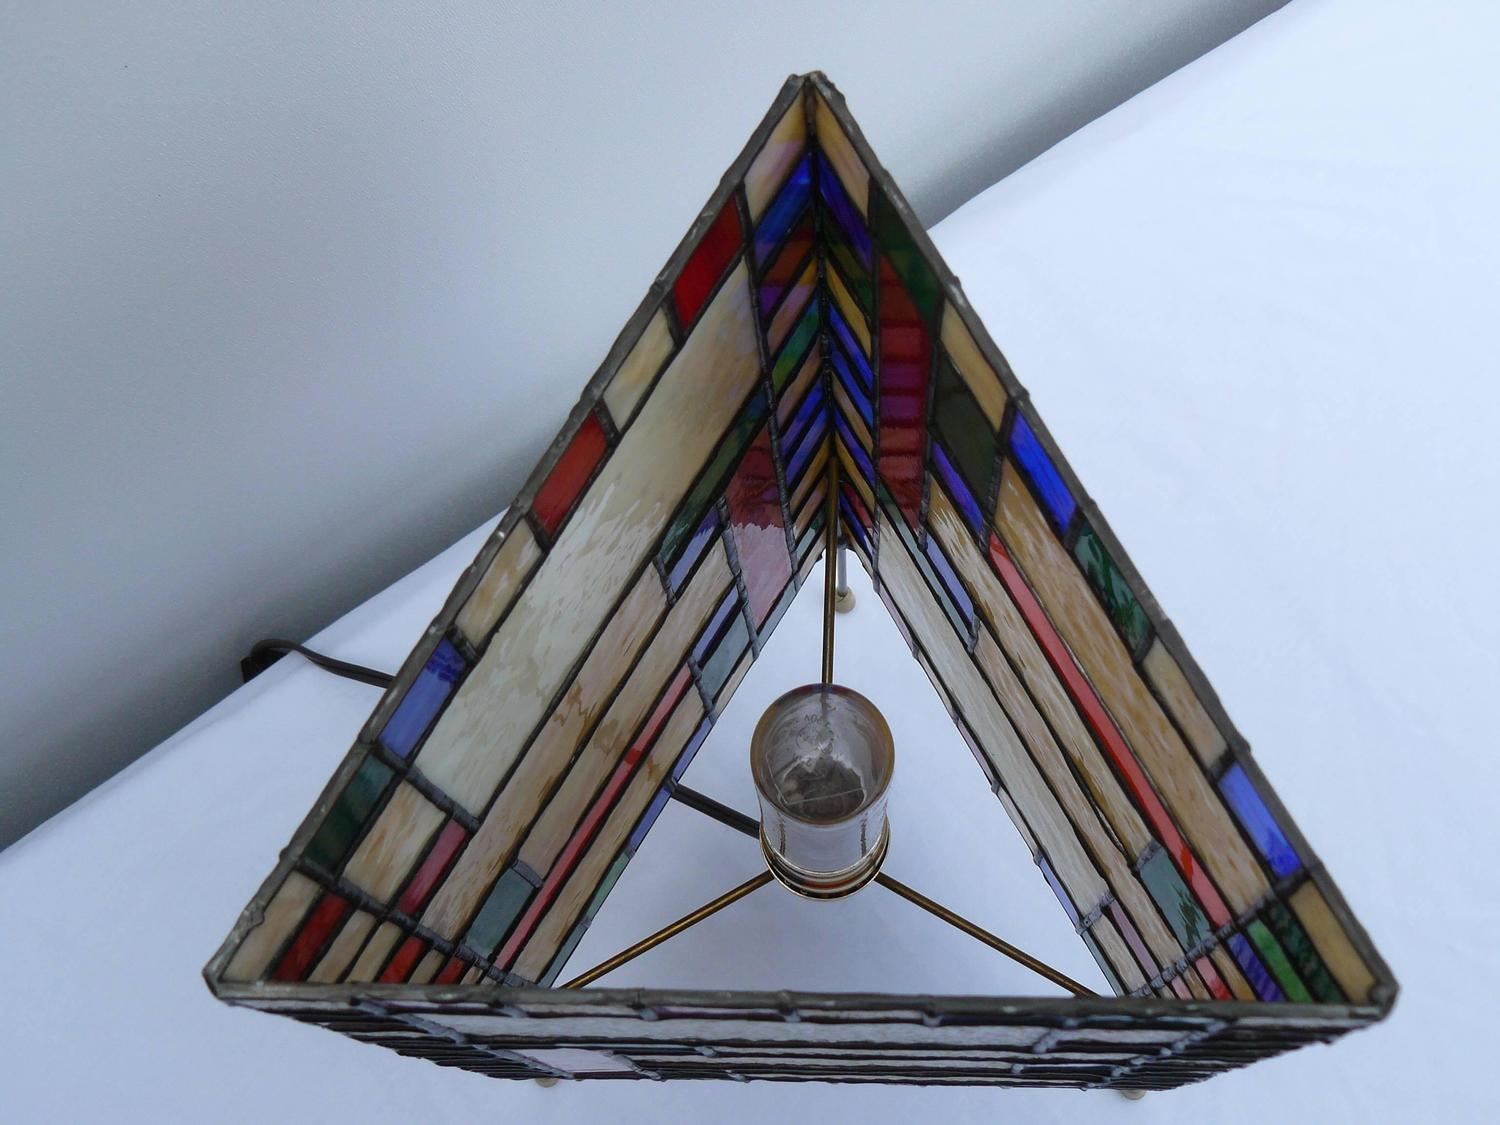 prairie school stained glass tripod lamp for sale at 1stdibs. Black Bedroom Furniture Sets. Home Design Ideas